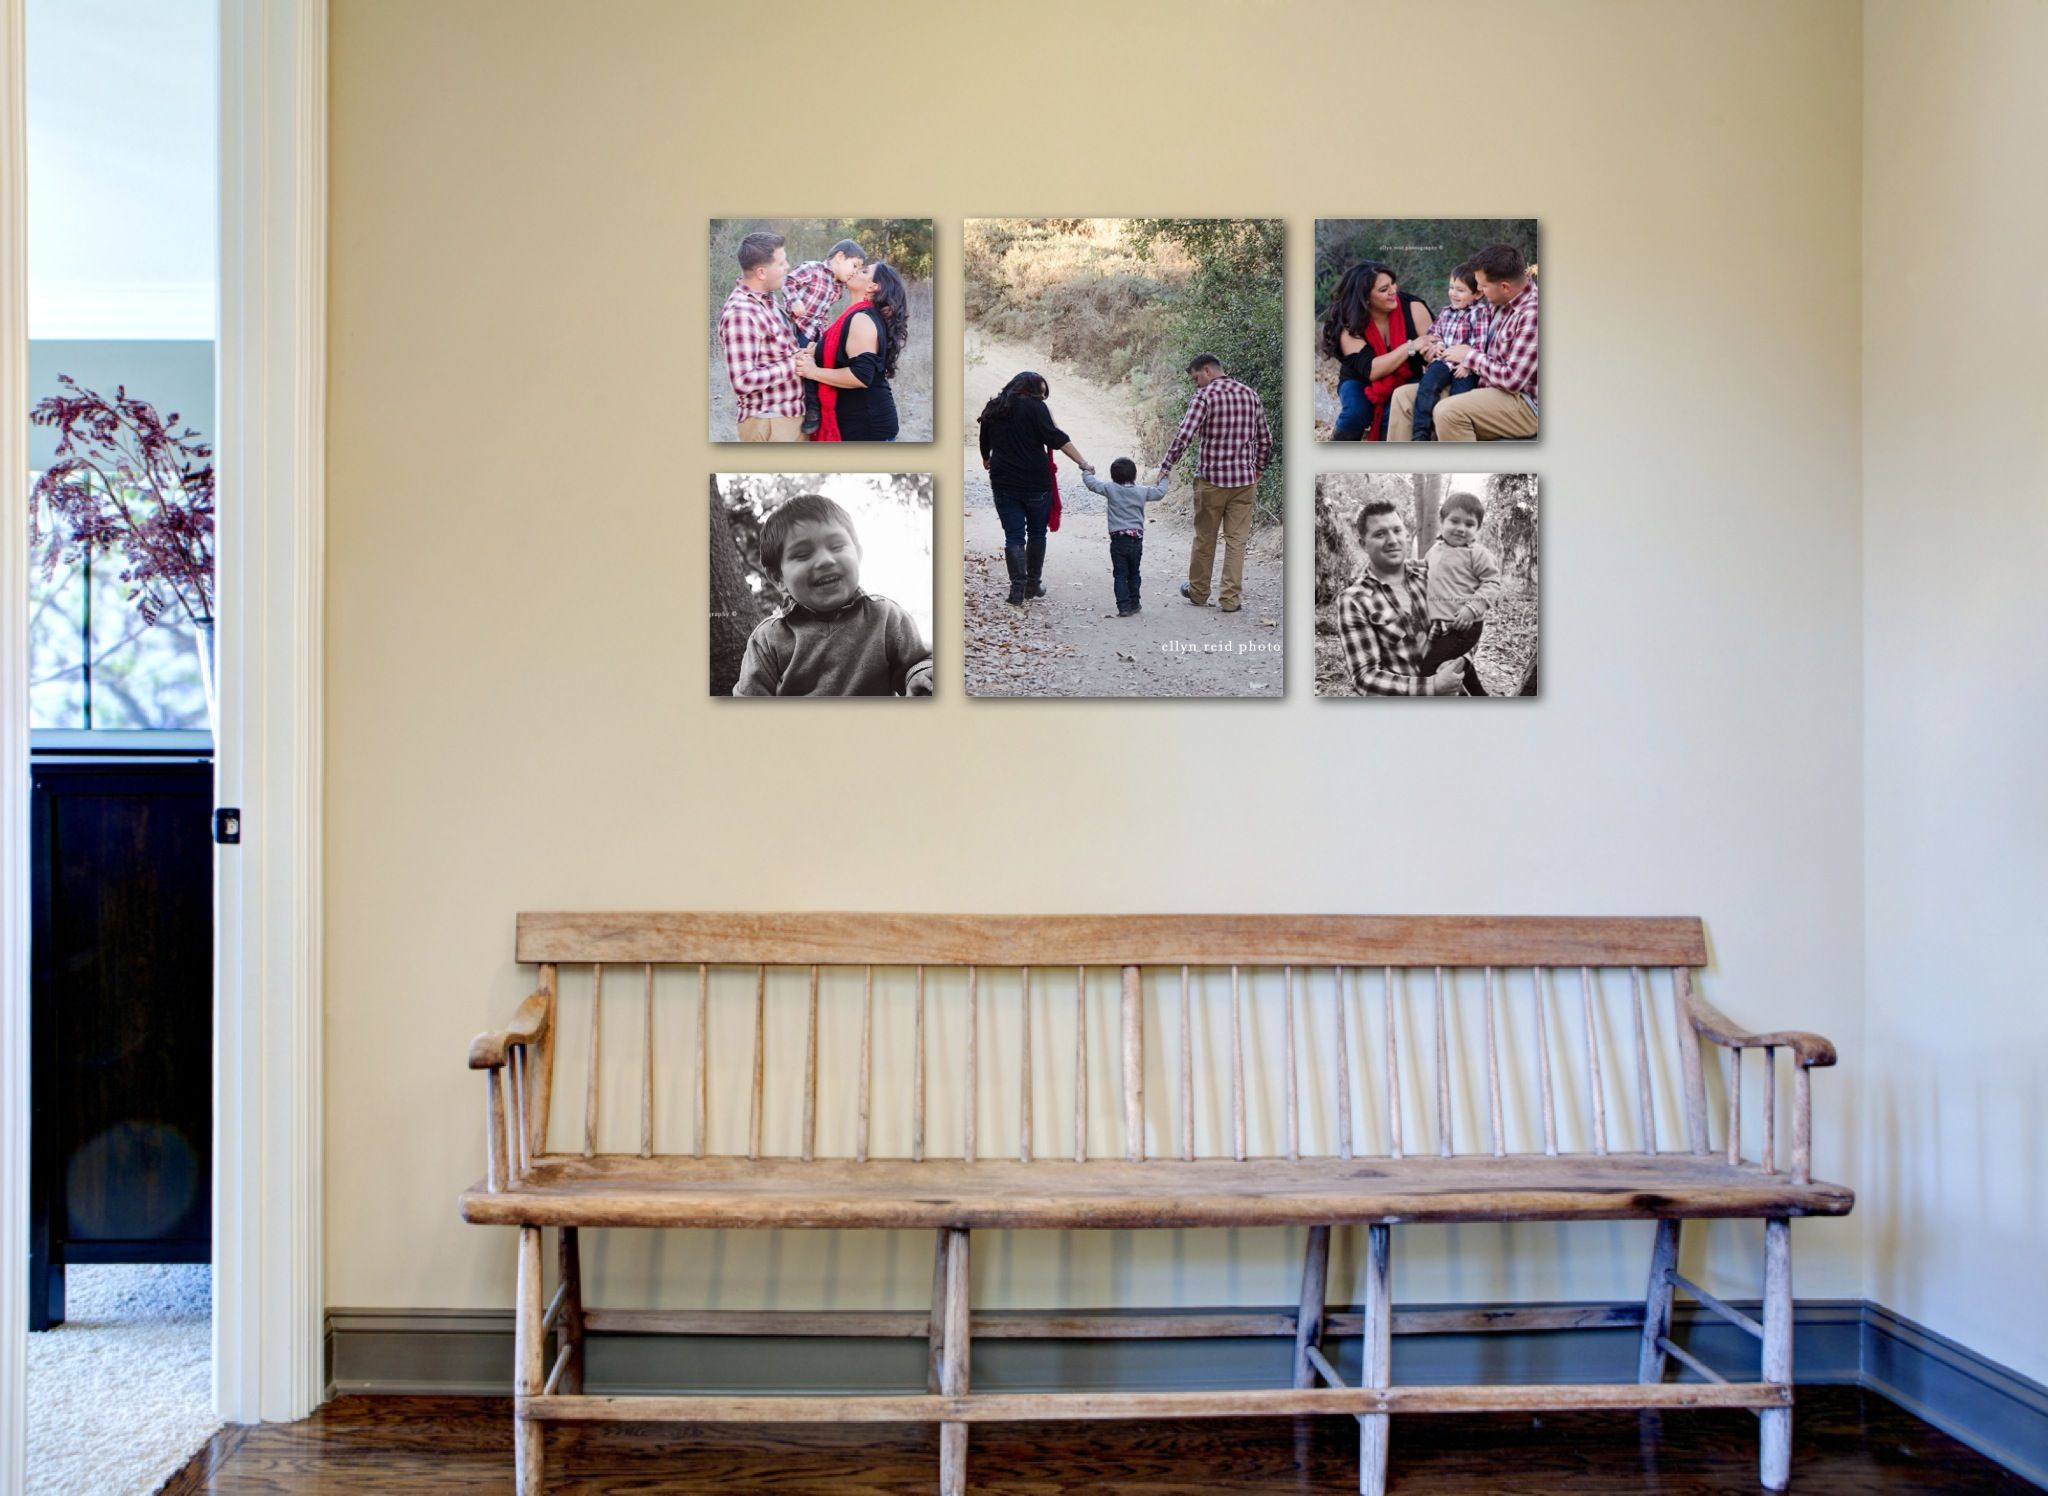 Decoration, Canvas Family Photo Wall Display Ideas In The Corridor House  With White Wall Interior